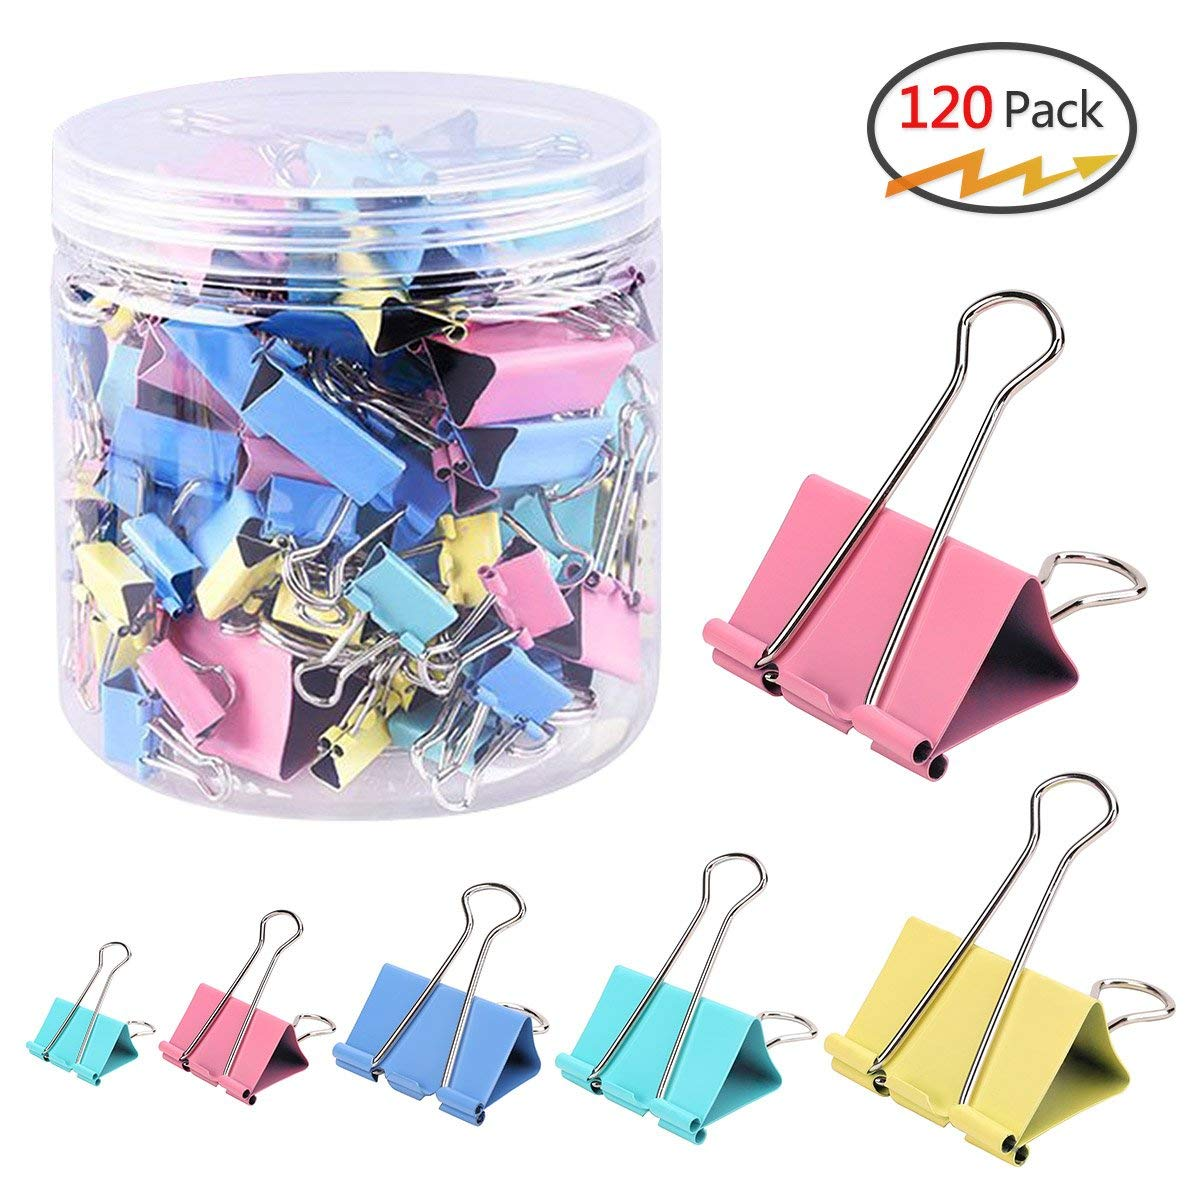 120 Pcs Binder Clips Paper Clamps Assorted 6 Sizes, Paper Binder Clips Metal Fold Back Clips with Box for Office,School and Home Supplies,Assorted Colors